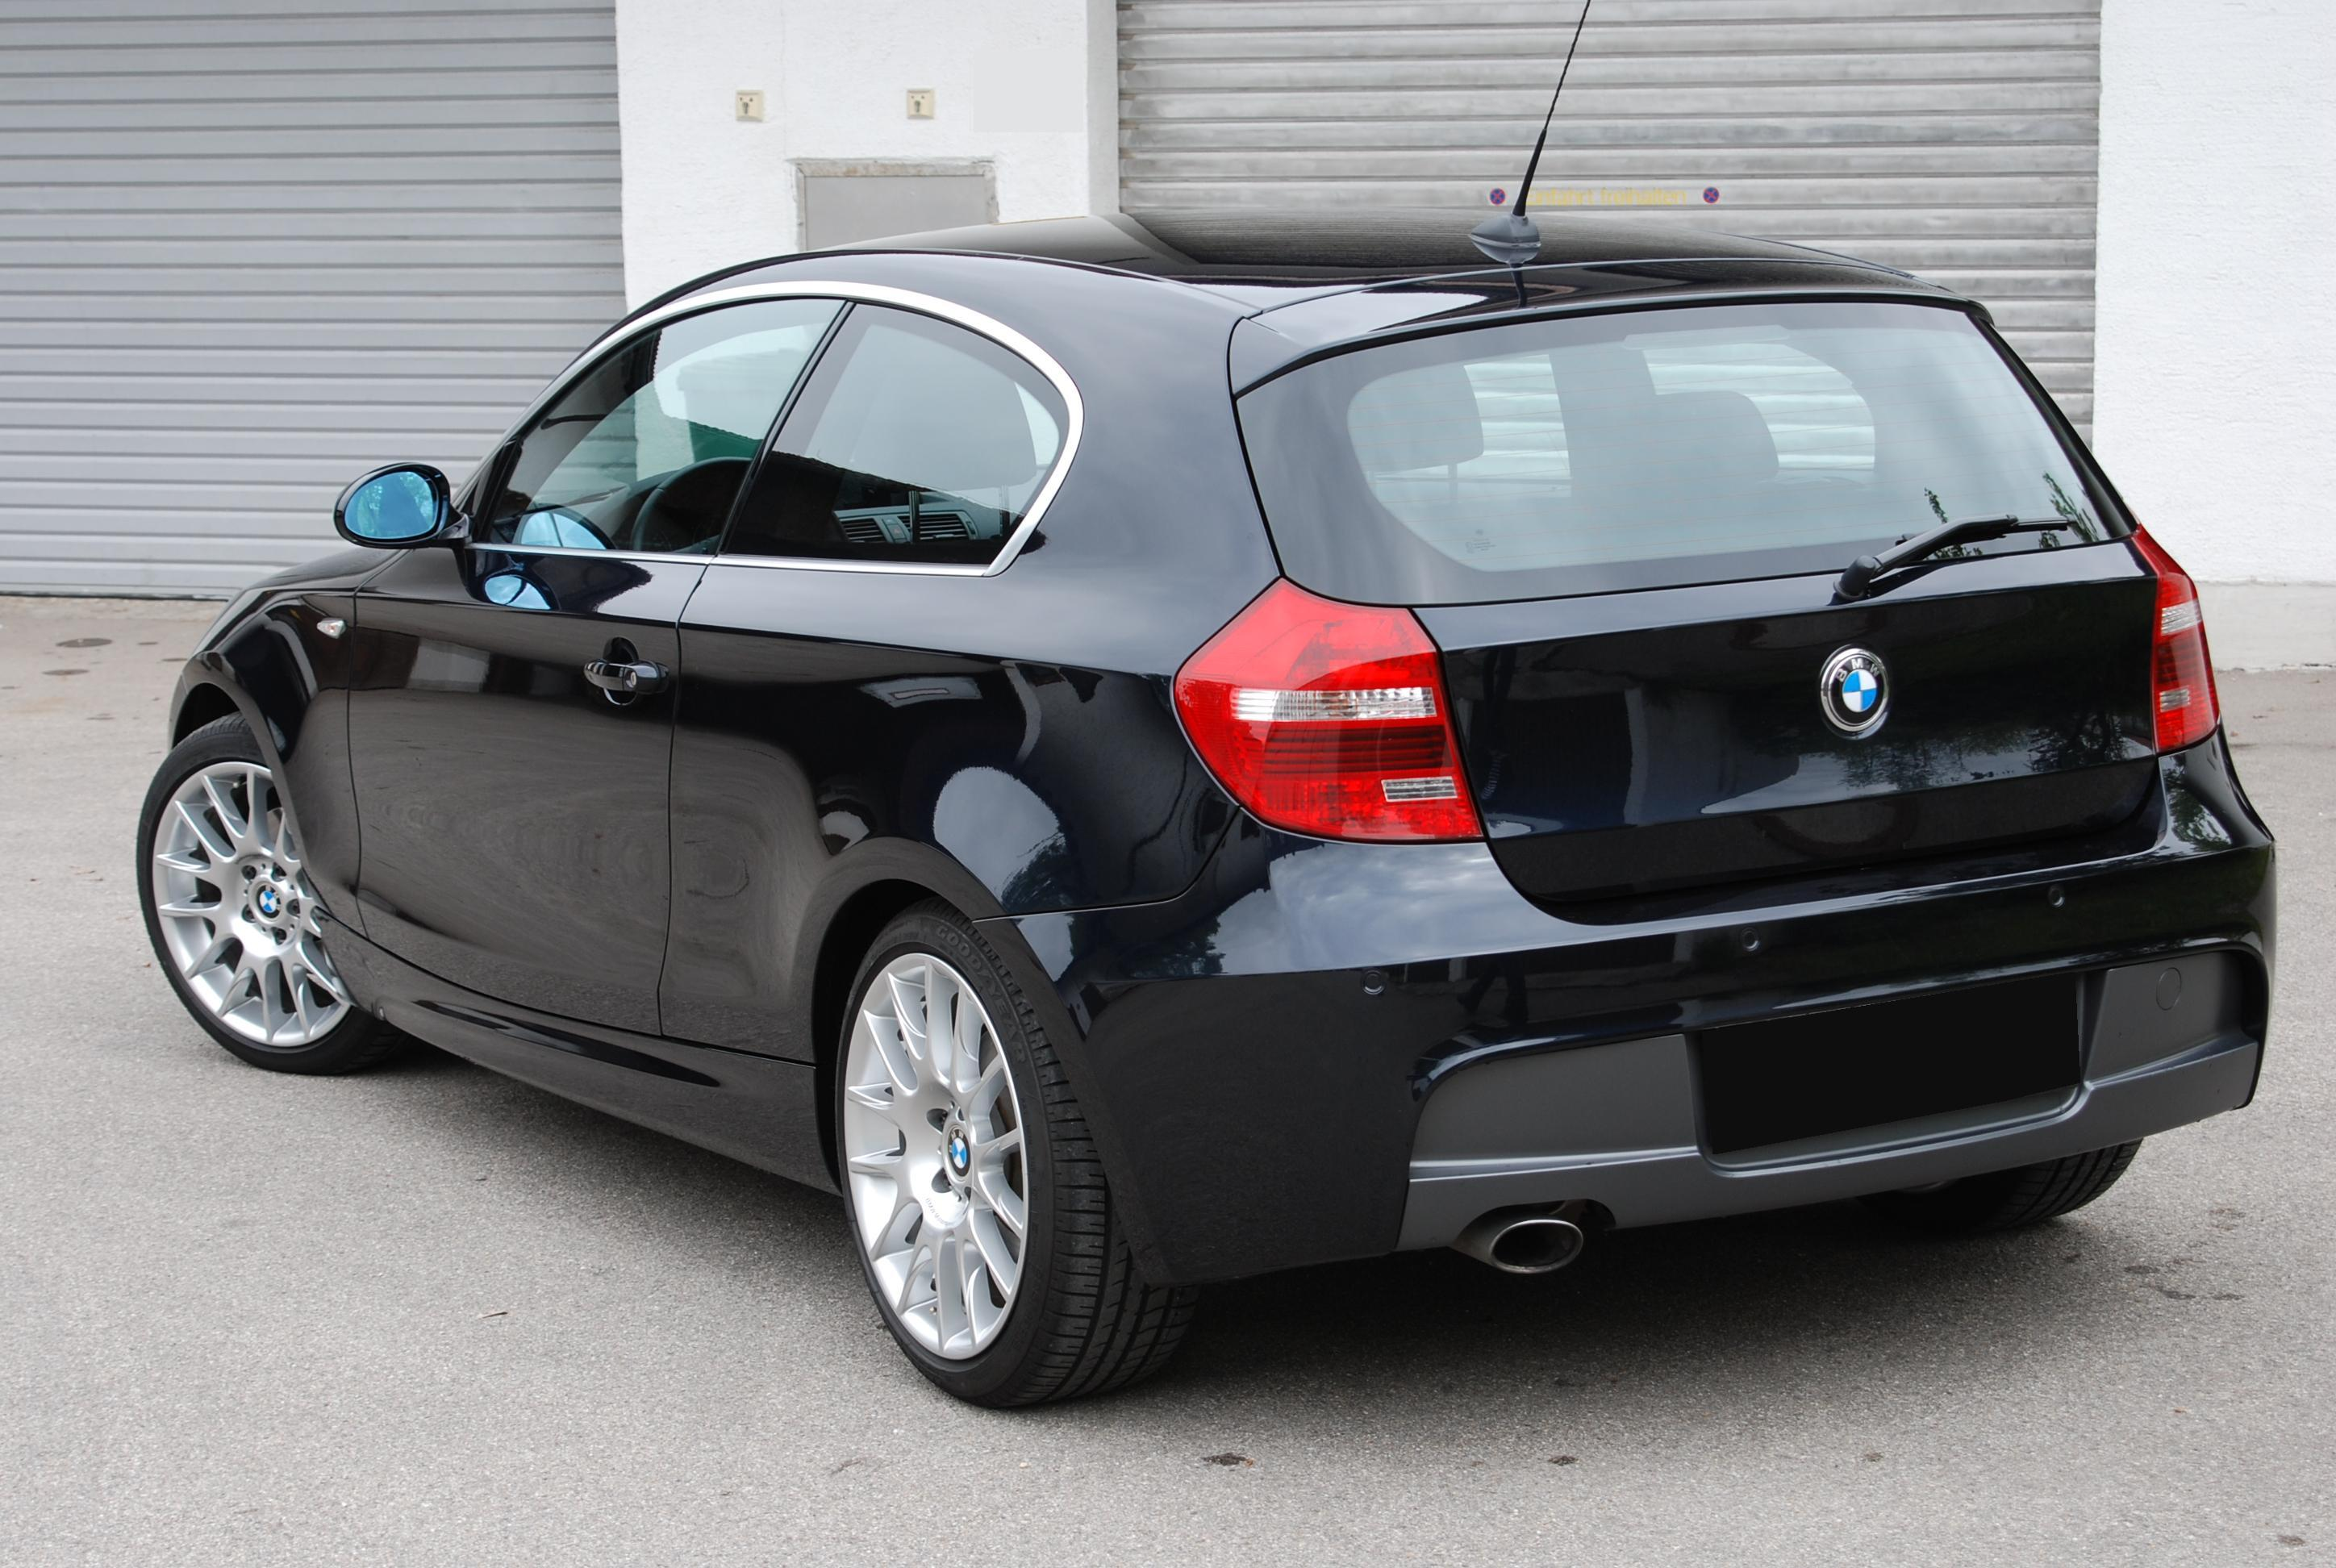 bmw 120d sport pictures photos information of modification video to bmw 120d sport on. Black Bedroom Furniture Sets. Home Design Ideas